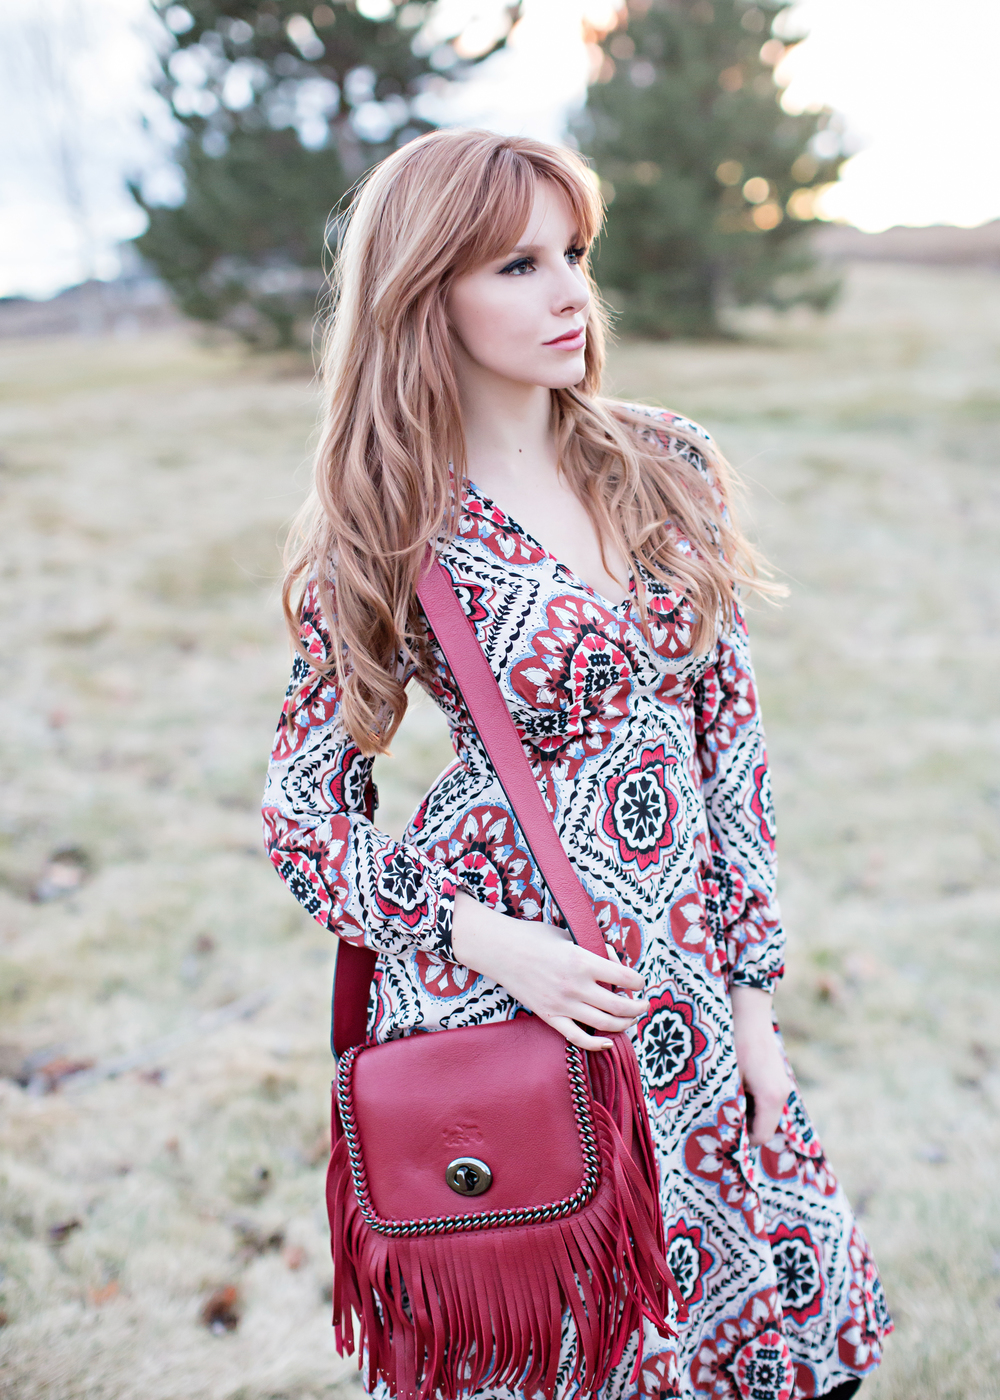 Red head wearing yumi kim dress, red fringe bag, 70s style